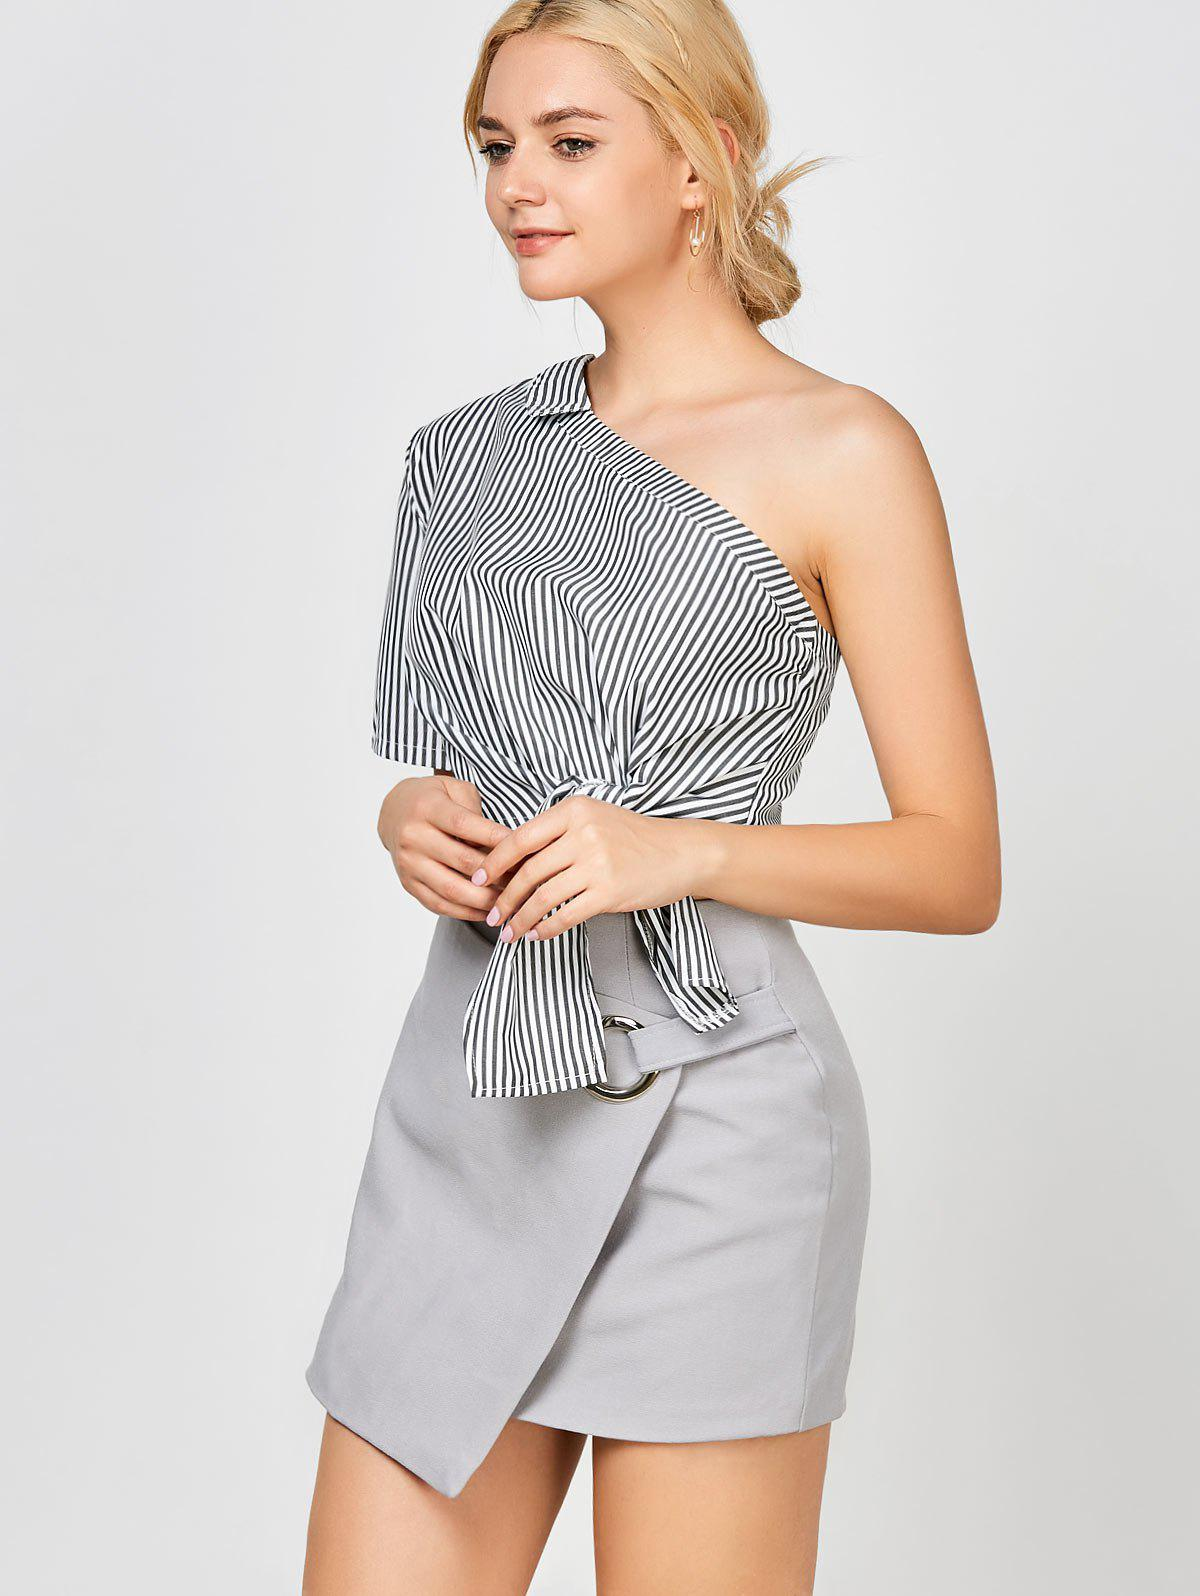 One-Shoulder Self-Tie Stripe Crop Top - WHITE/BLACK L